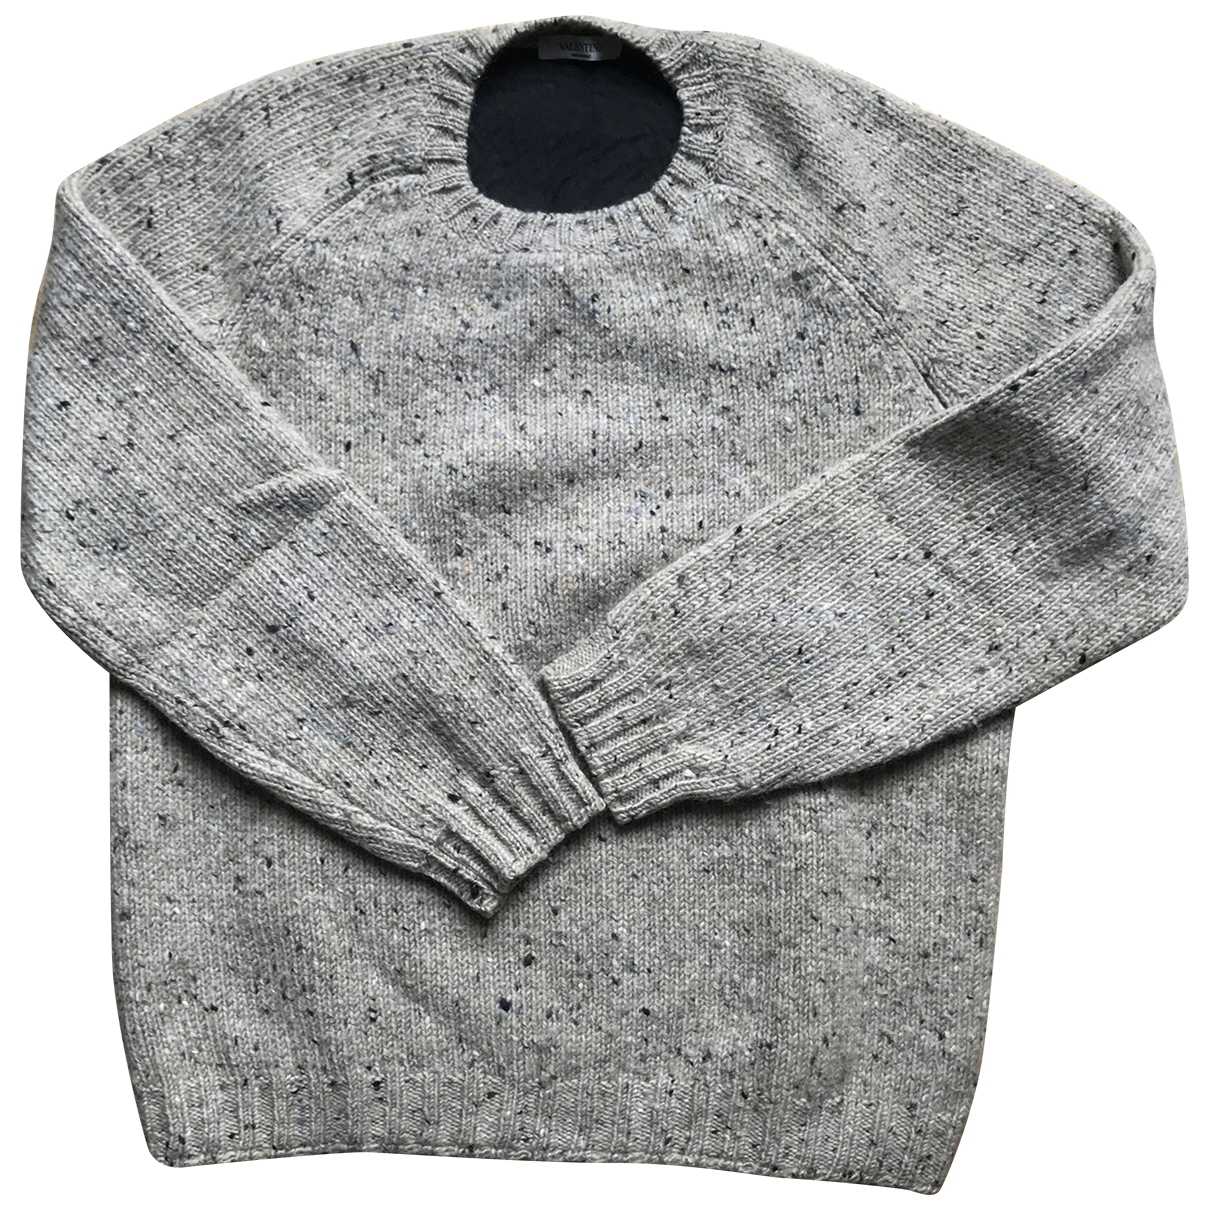 Valentino Garavani N Multicolour Wool Knitwear & Sweatshirts for Men L International